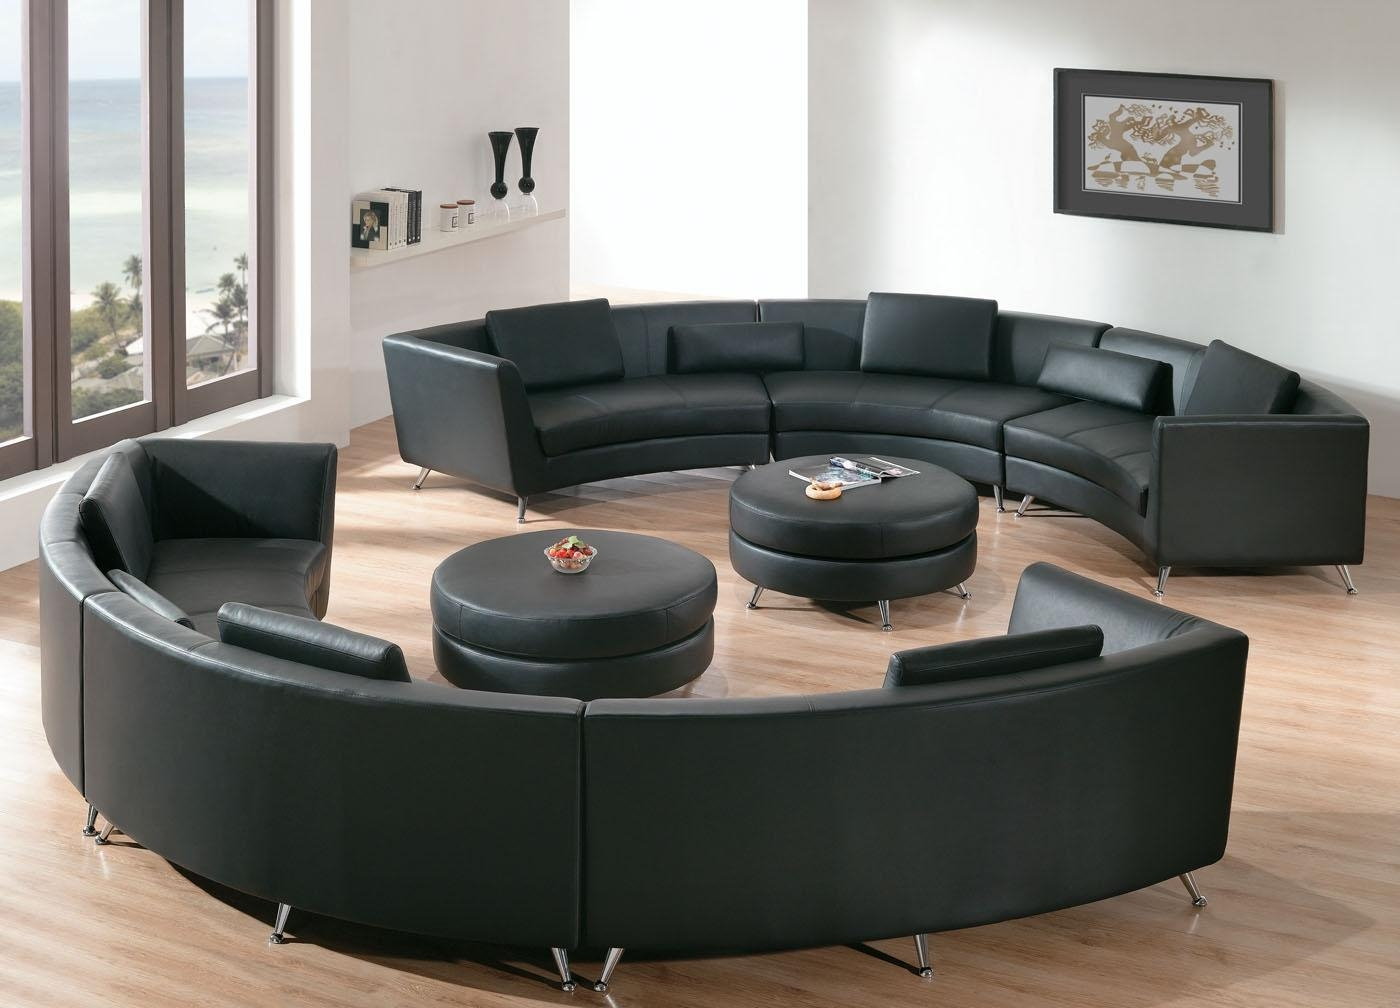 Sofas Center : Round Sofa Chair For Saleshley Furniture Big Large Pertaining To Big Round Sofa Chairs (Image 17 of 20)